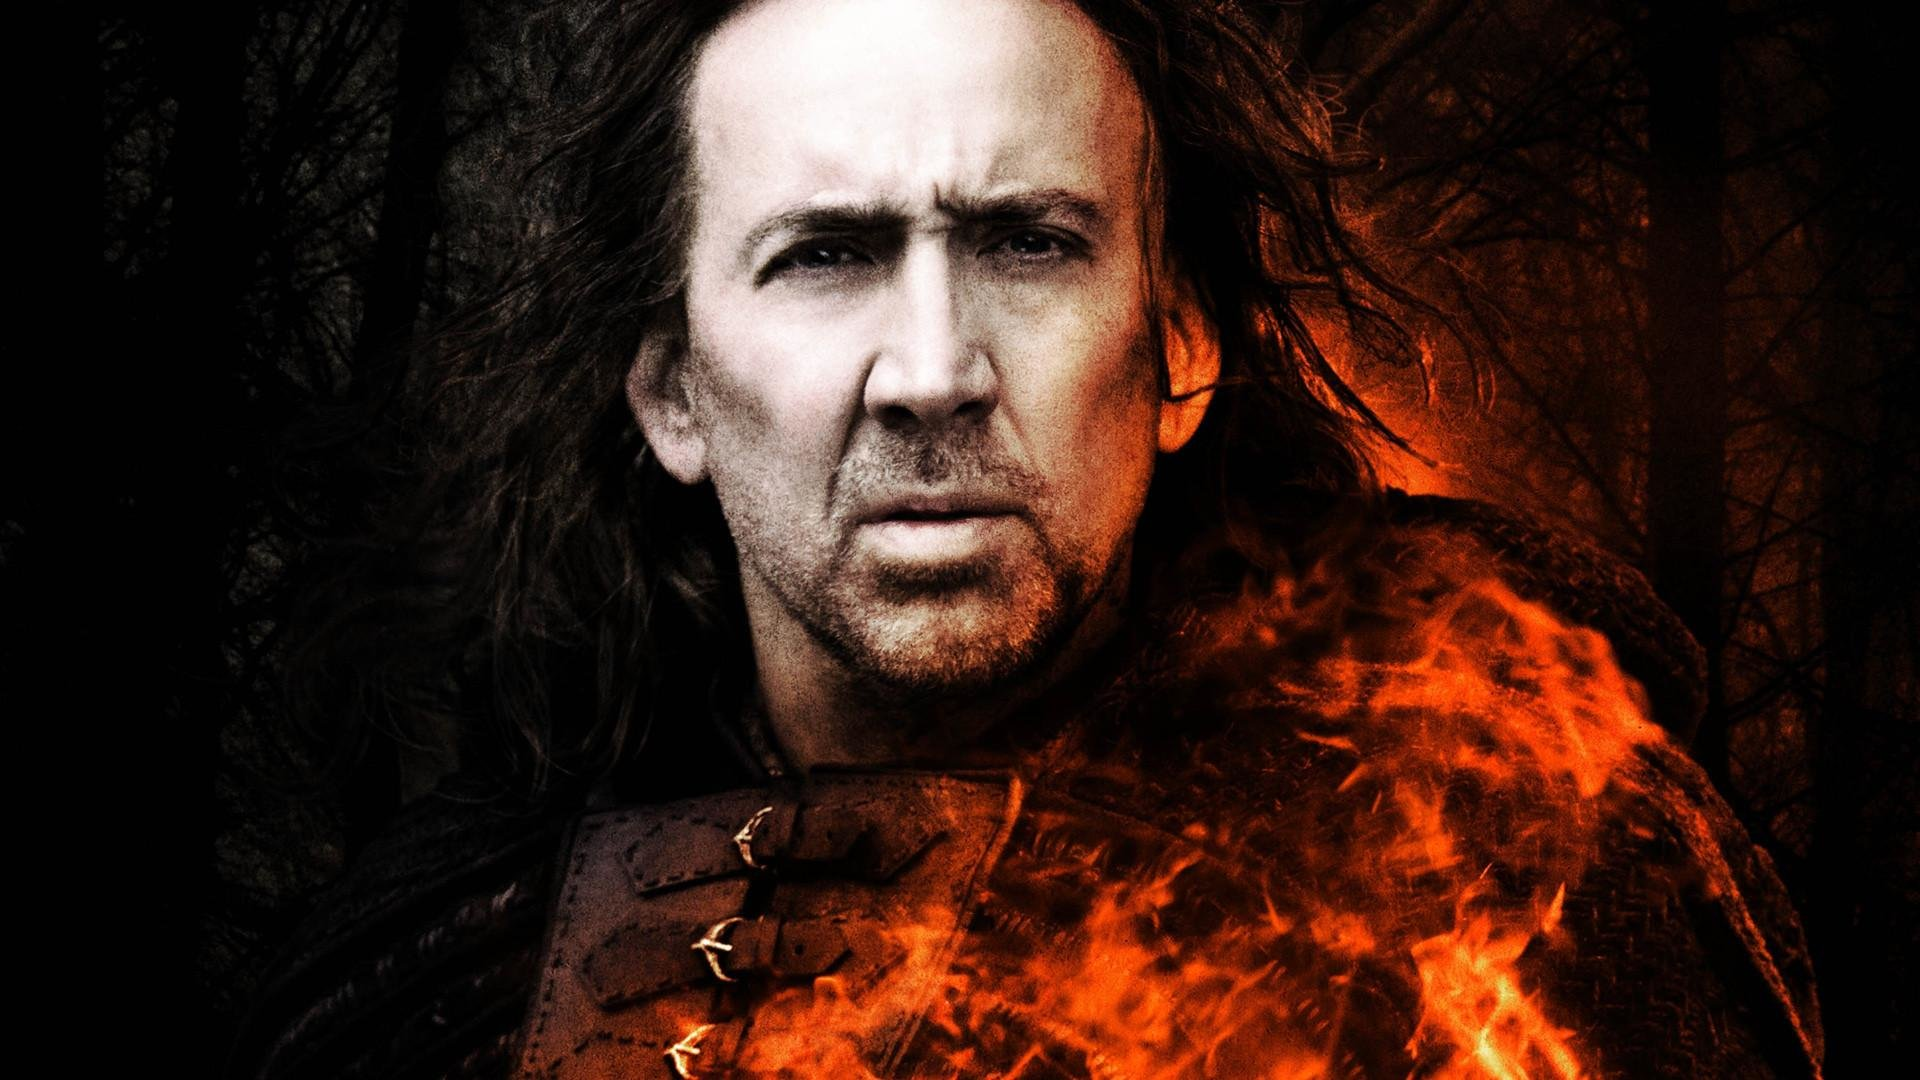 Free Nicolas Cage high quality background ID:80867 for full hd 1920x1080 computer